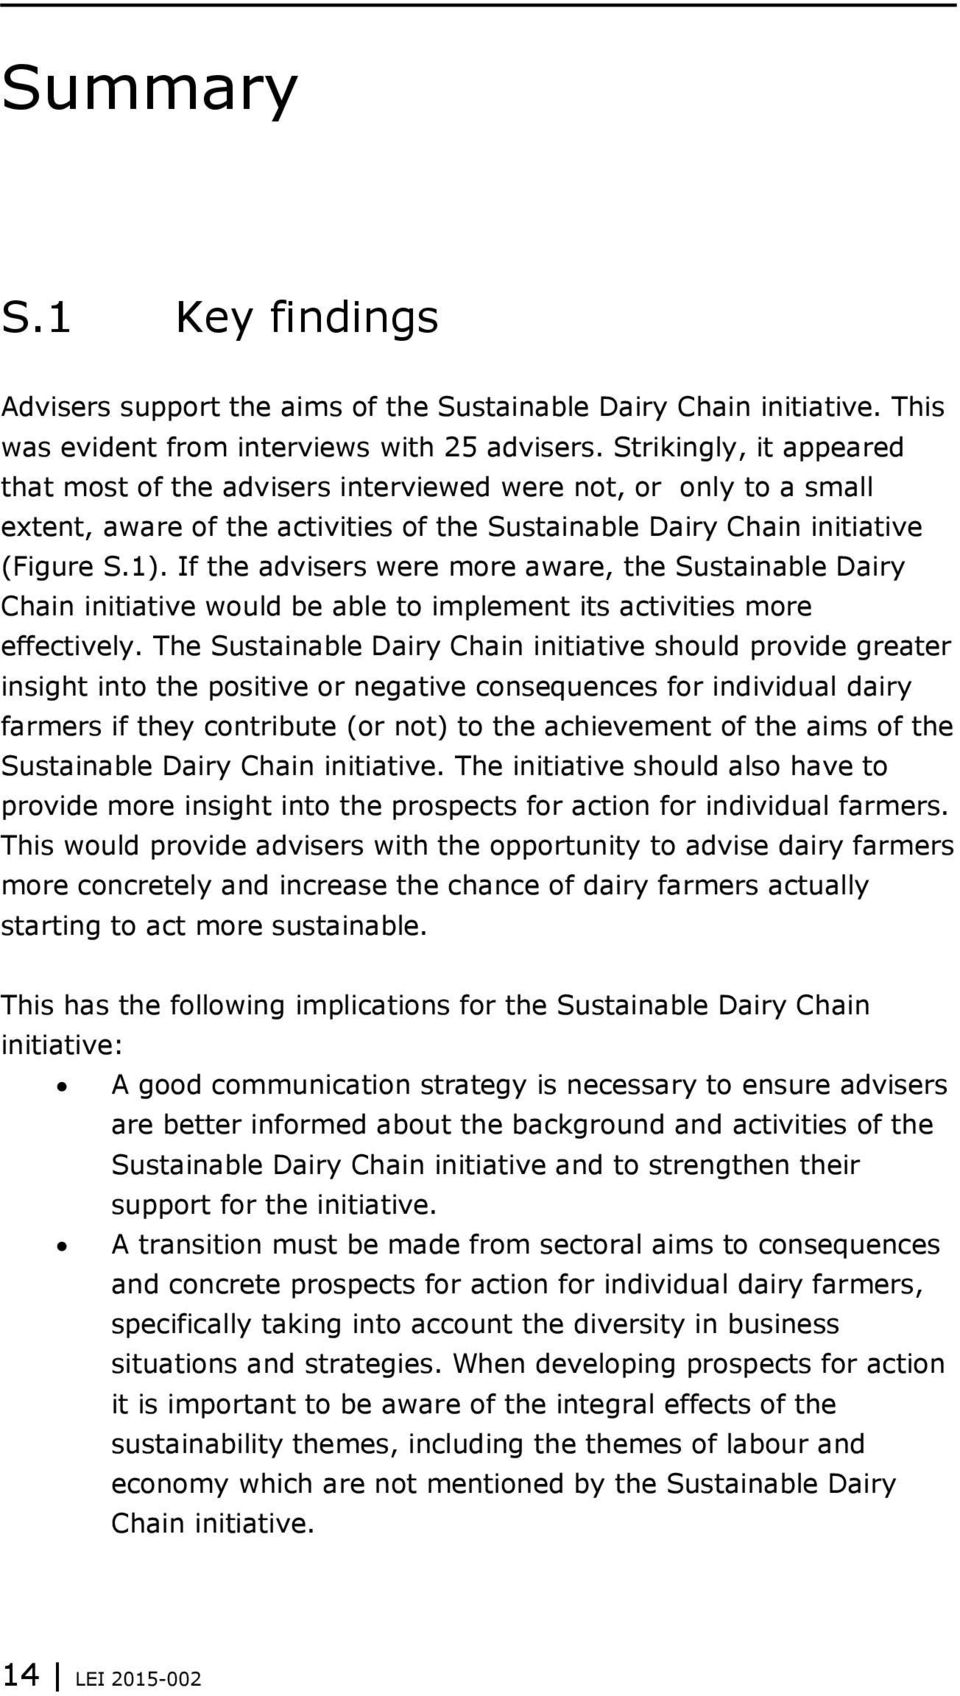 If the advisers were more aware, the Sustainable Dairy Chain initiative would be able to implement its activities more effectively.